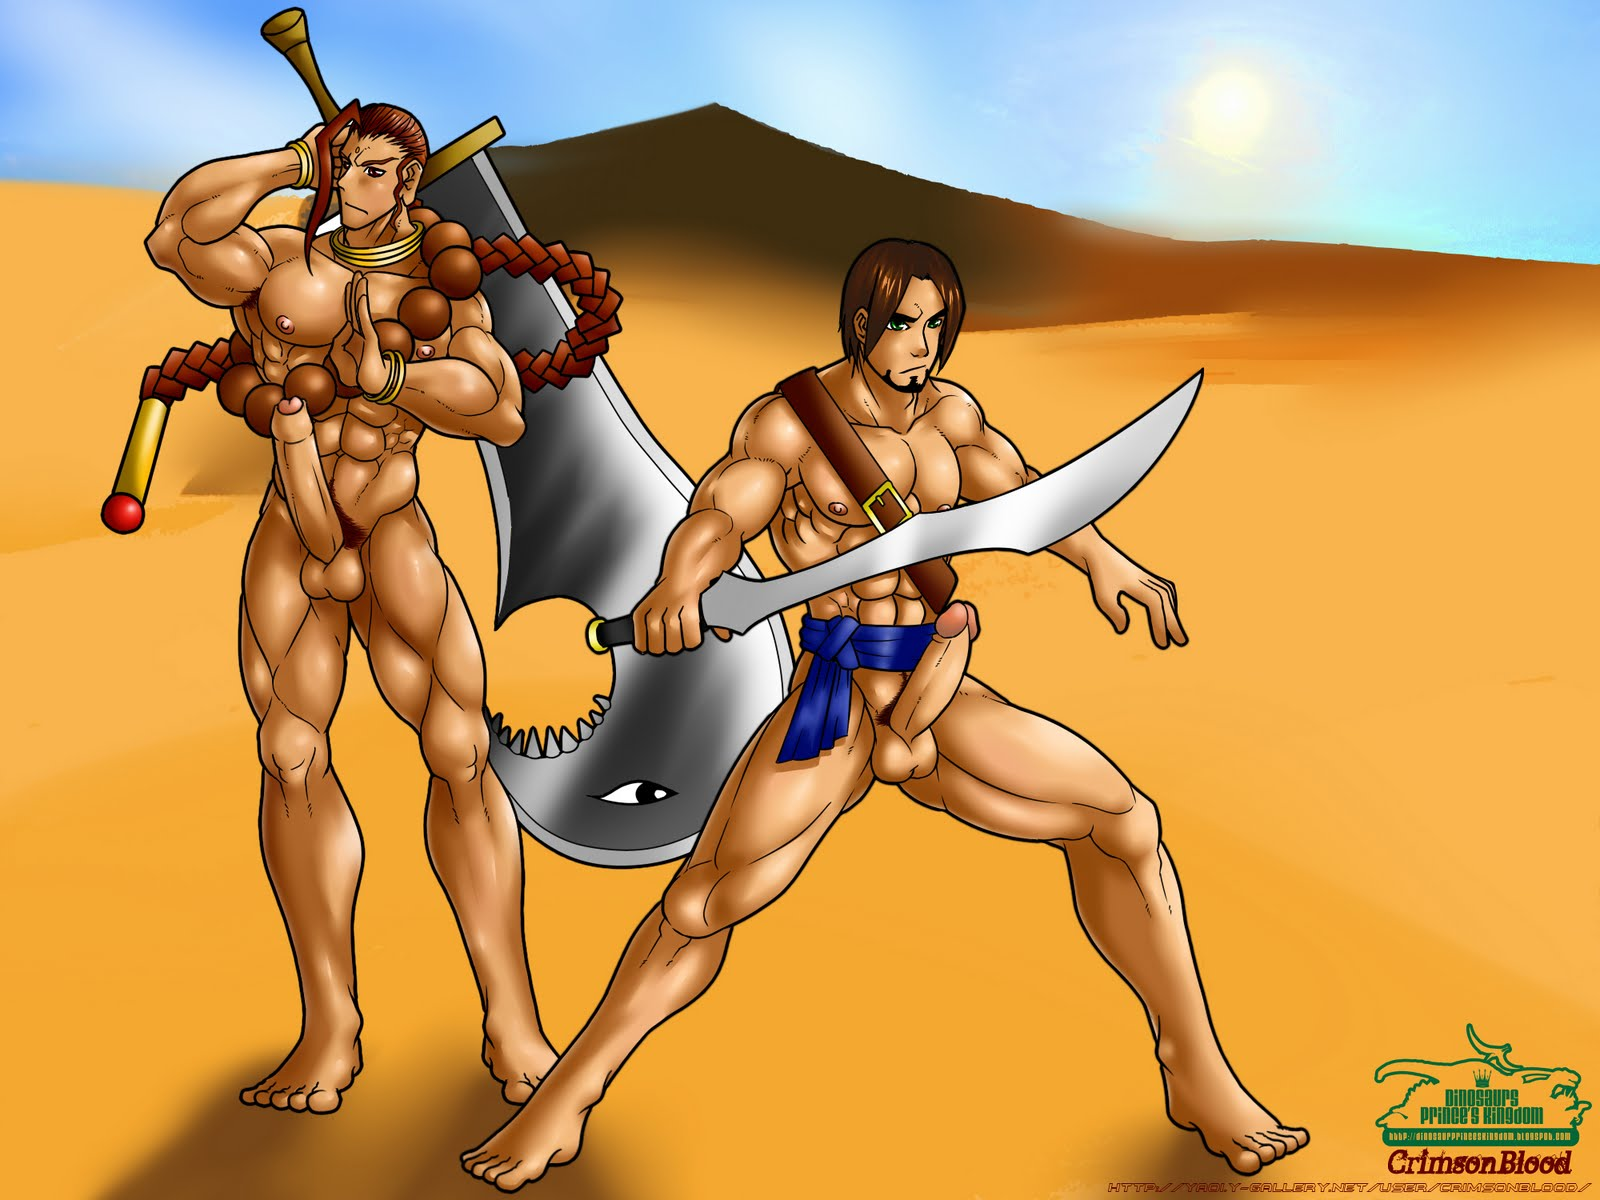 Cartoon prince of persia xxx pics erotic scenes